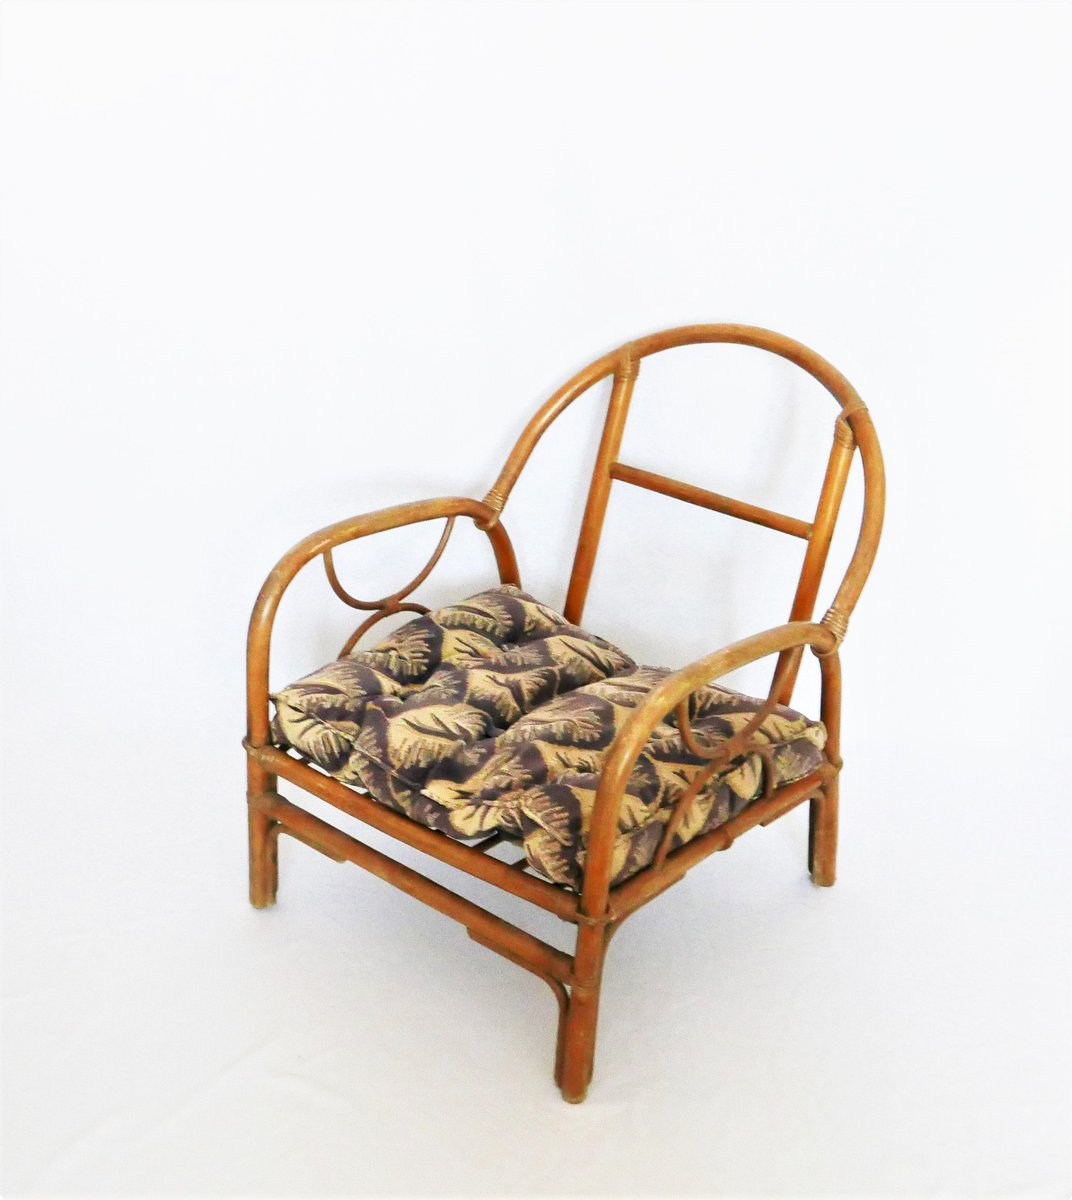 Vintage french bamboo lounge chairs set of 2 for sale at for Vintage parisian lounge